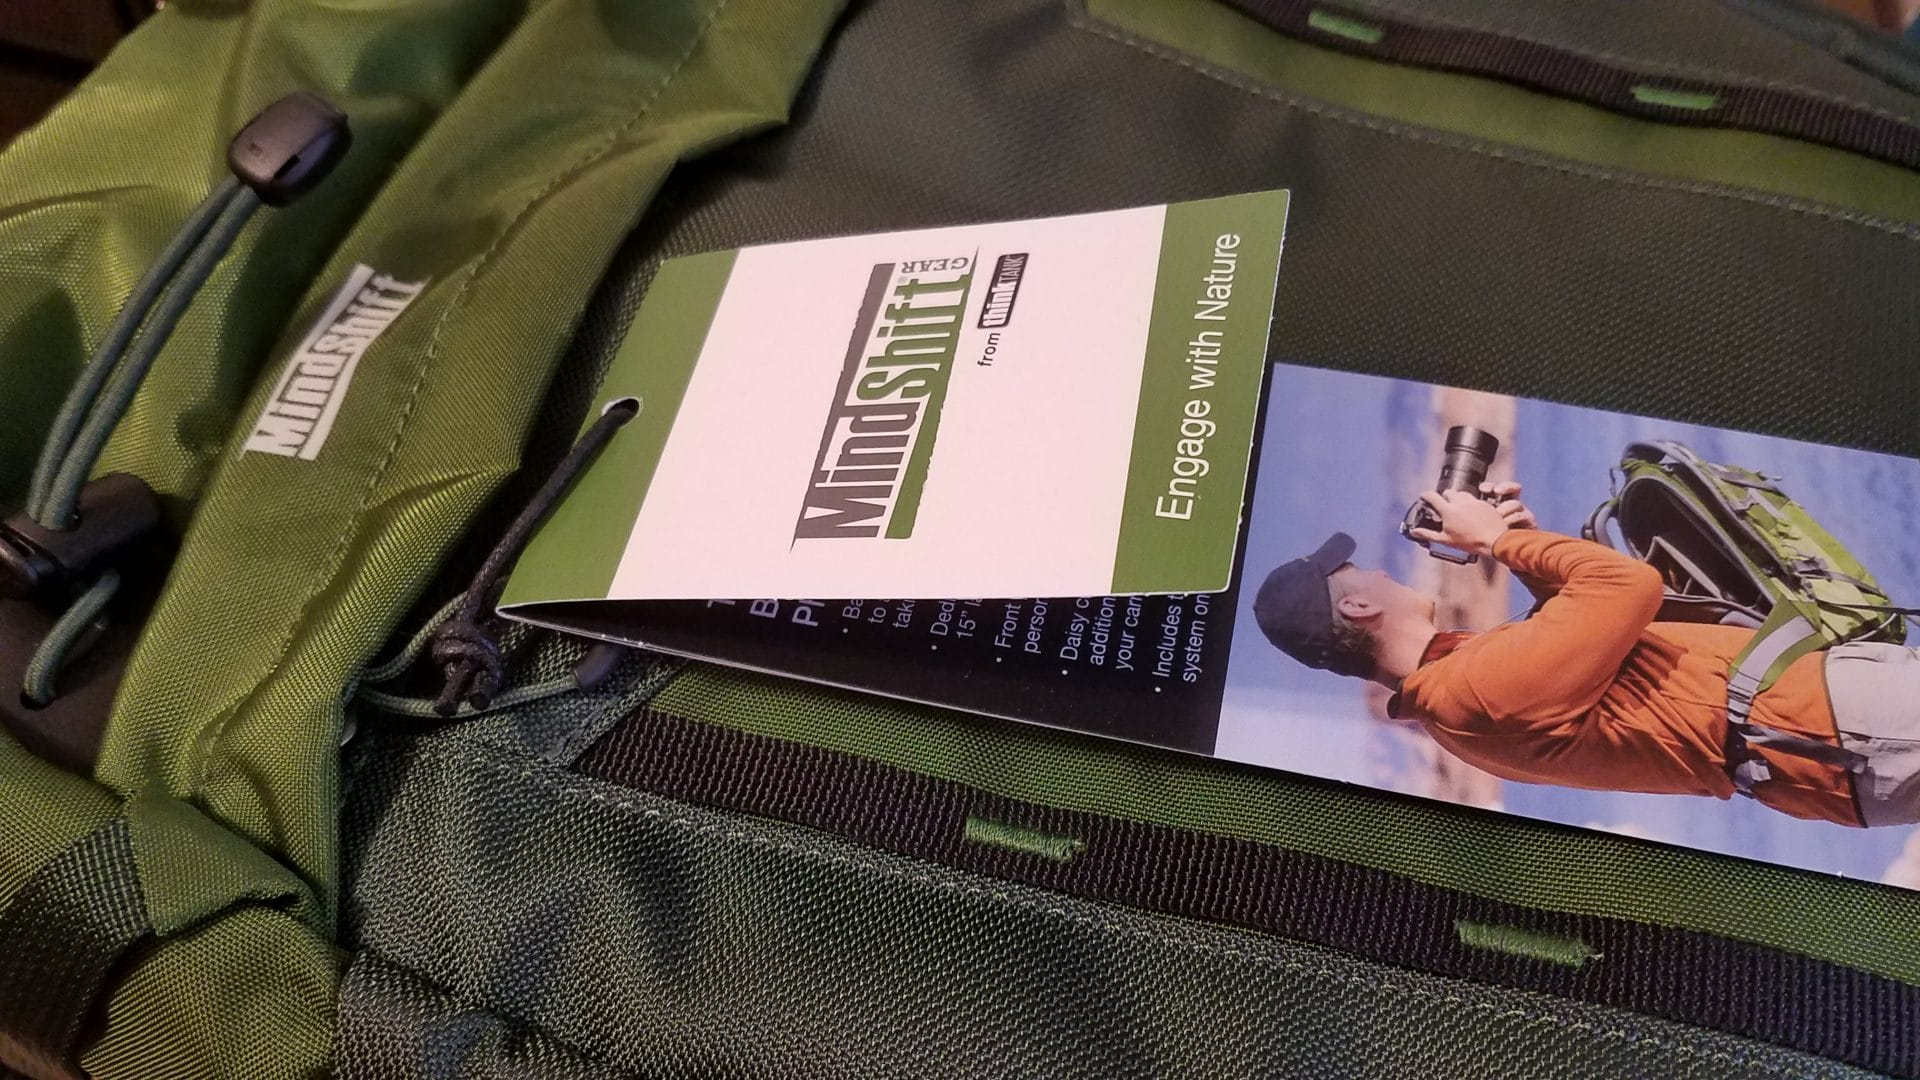 """""""Selecting the Best Camera Bag"""" -  The MindShift Backlight 26L backpack allows you to swing the bag around to the front of your body to open the back of the pack and access your gear, all while not taking the bag off."""